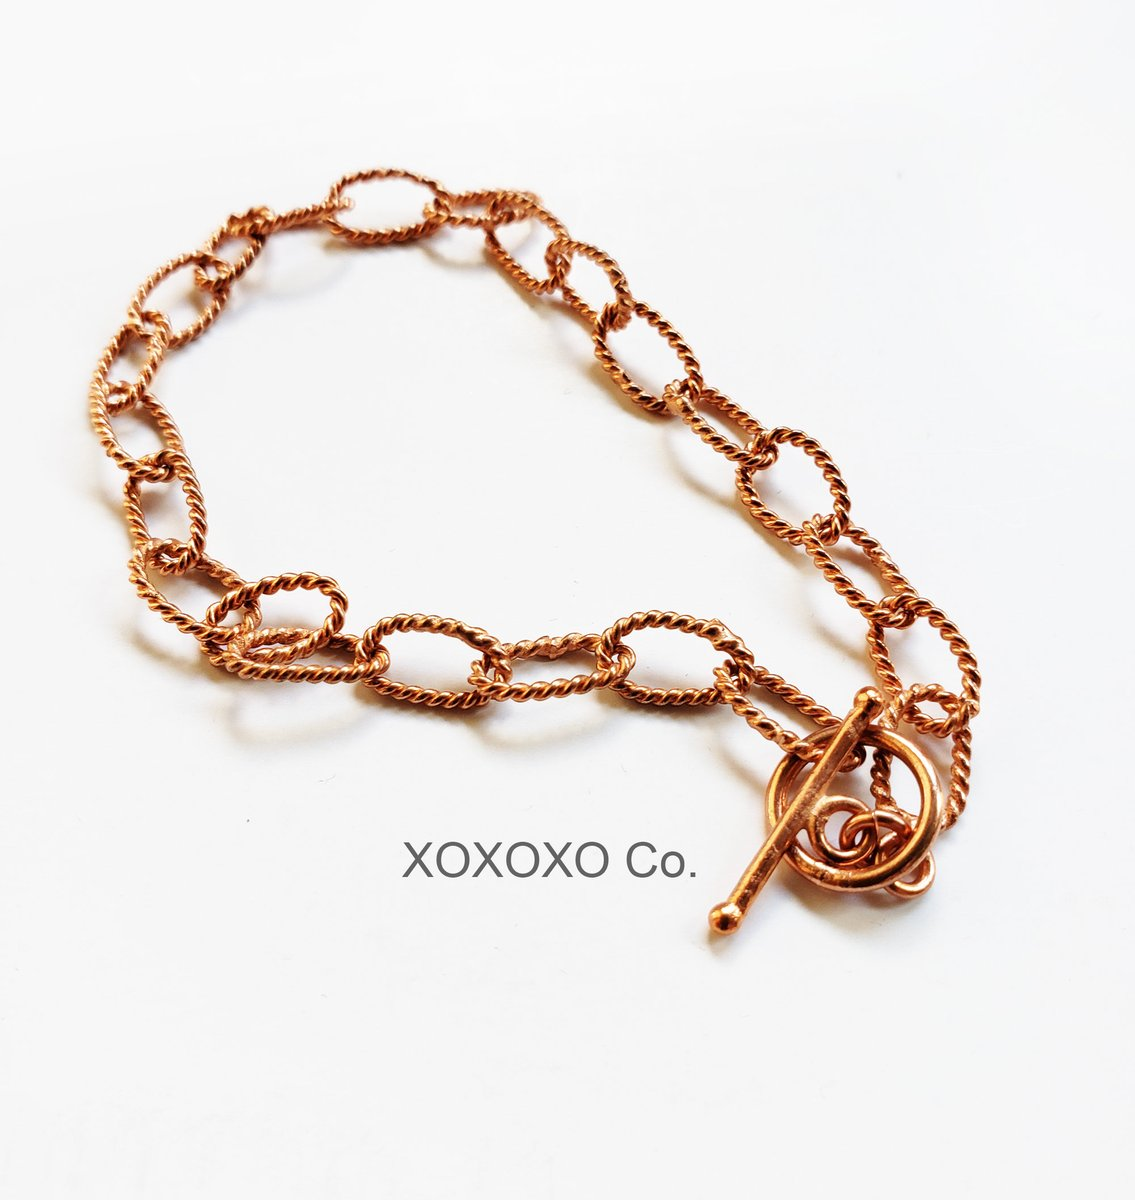 Solid Copper Bracelet Rope Link Chain Copper Toggle Clasp https://t.co/MTK8flSW7d #fashion #handmade #handmadejewelry #Etsy #christmasgifts #shopsmall #giftsforher #style #jewelryblogger https://t.co/QnDCCazDII